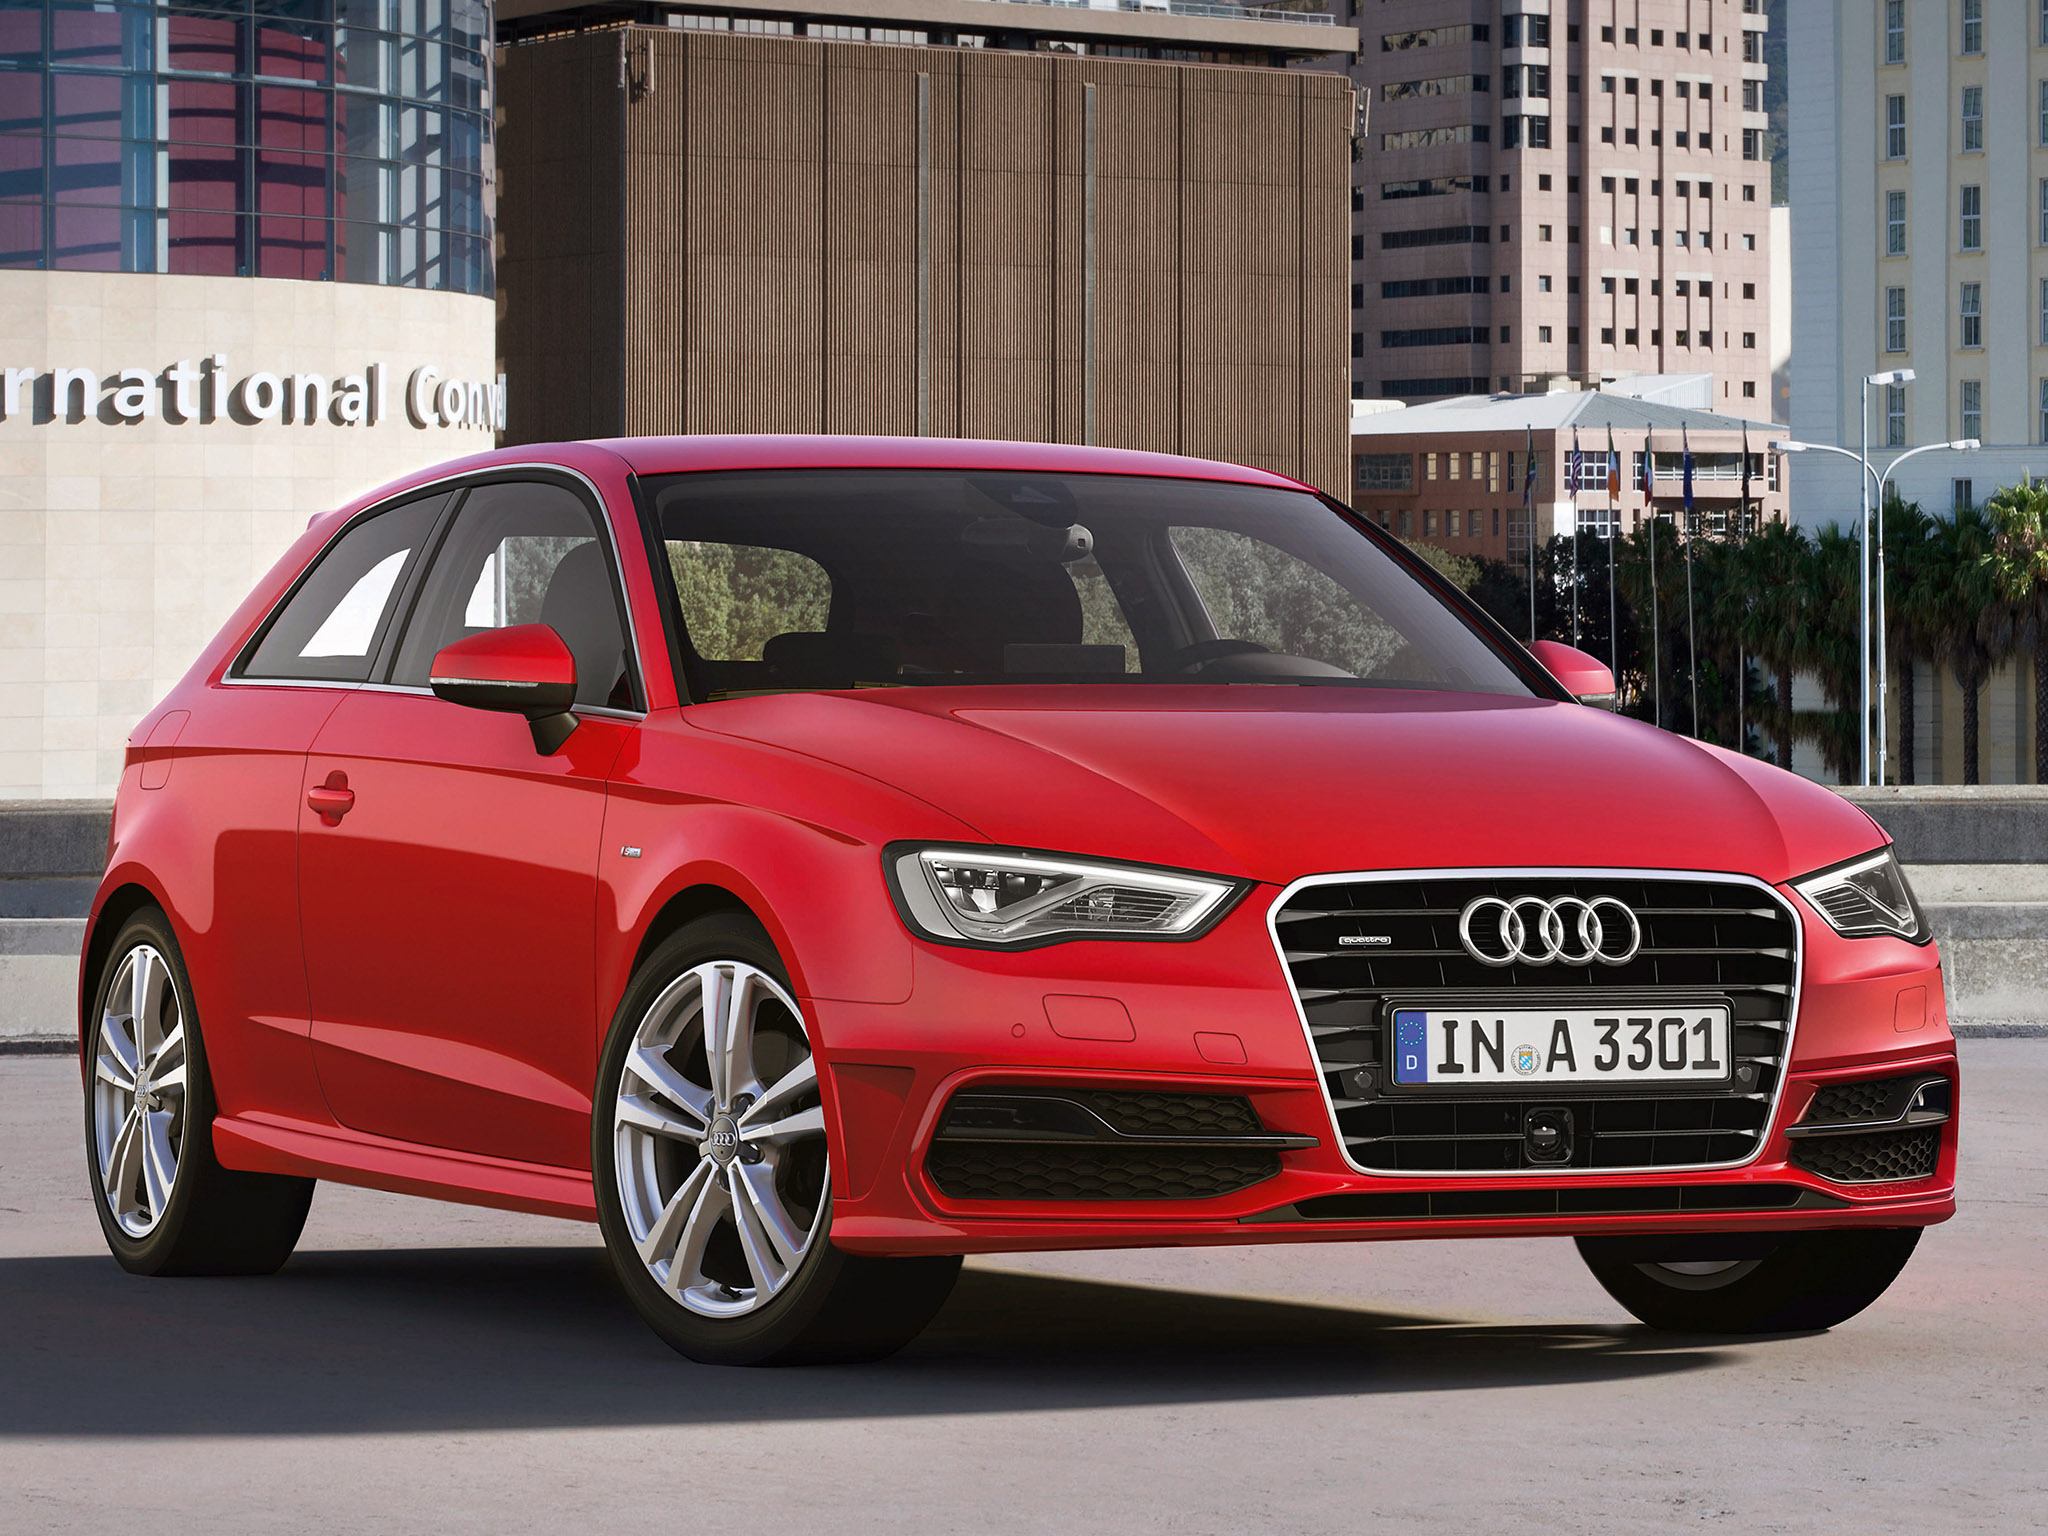 audi a3 1 8t s line 2012 audi a3 1 8t s line 2012 photo 22 car in pictures car photo gallery. Black Bedroom Furniture Sets. Home Design Ideas